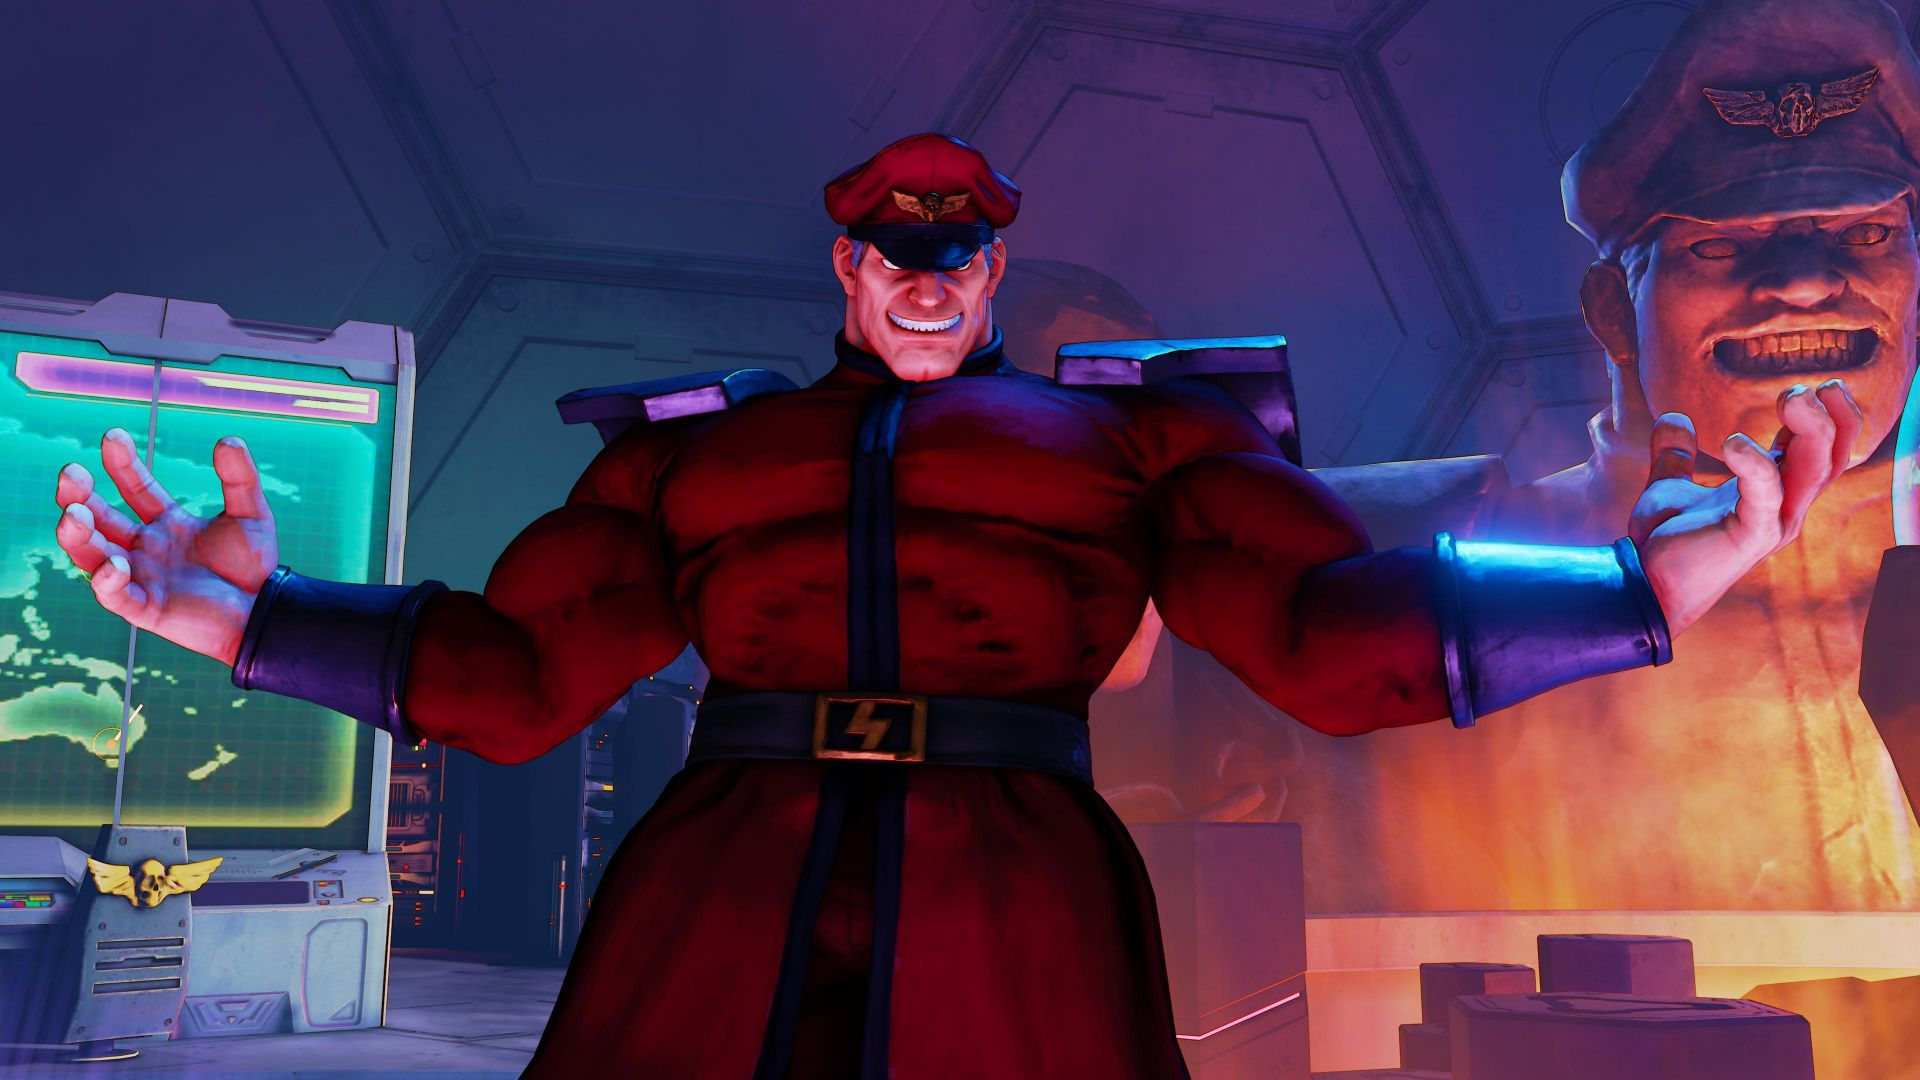 Street Fighter 5, M. BISON, Best Games, fantasy, PC, PS4